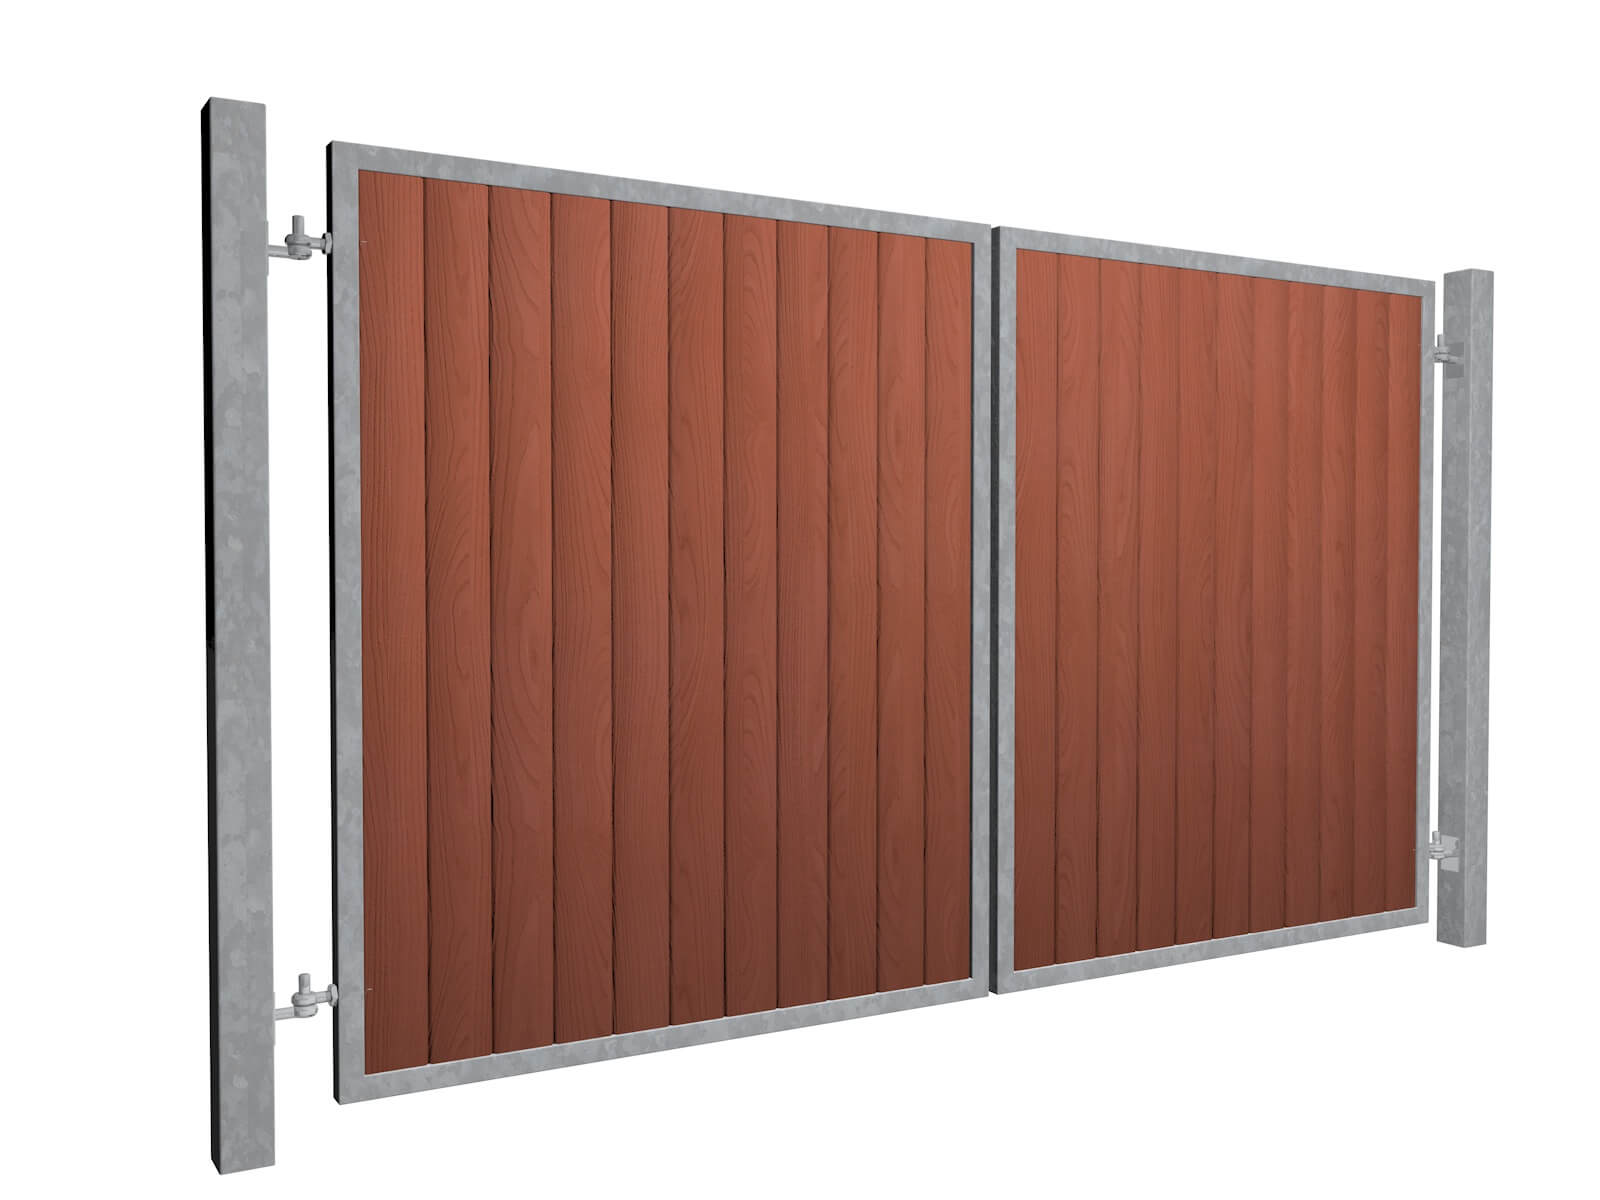 Metal framed commercial wood-fill gate